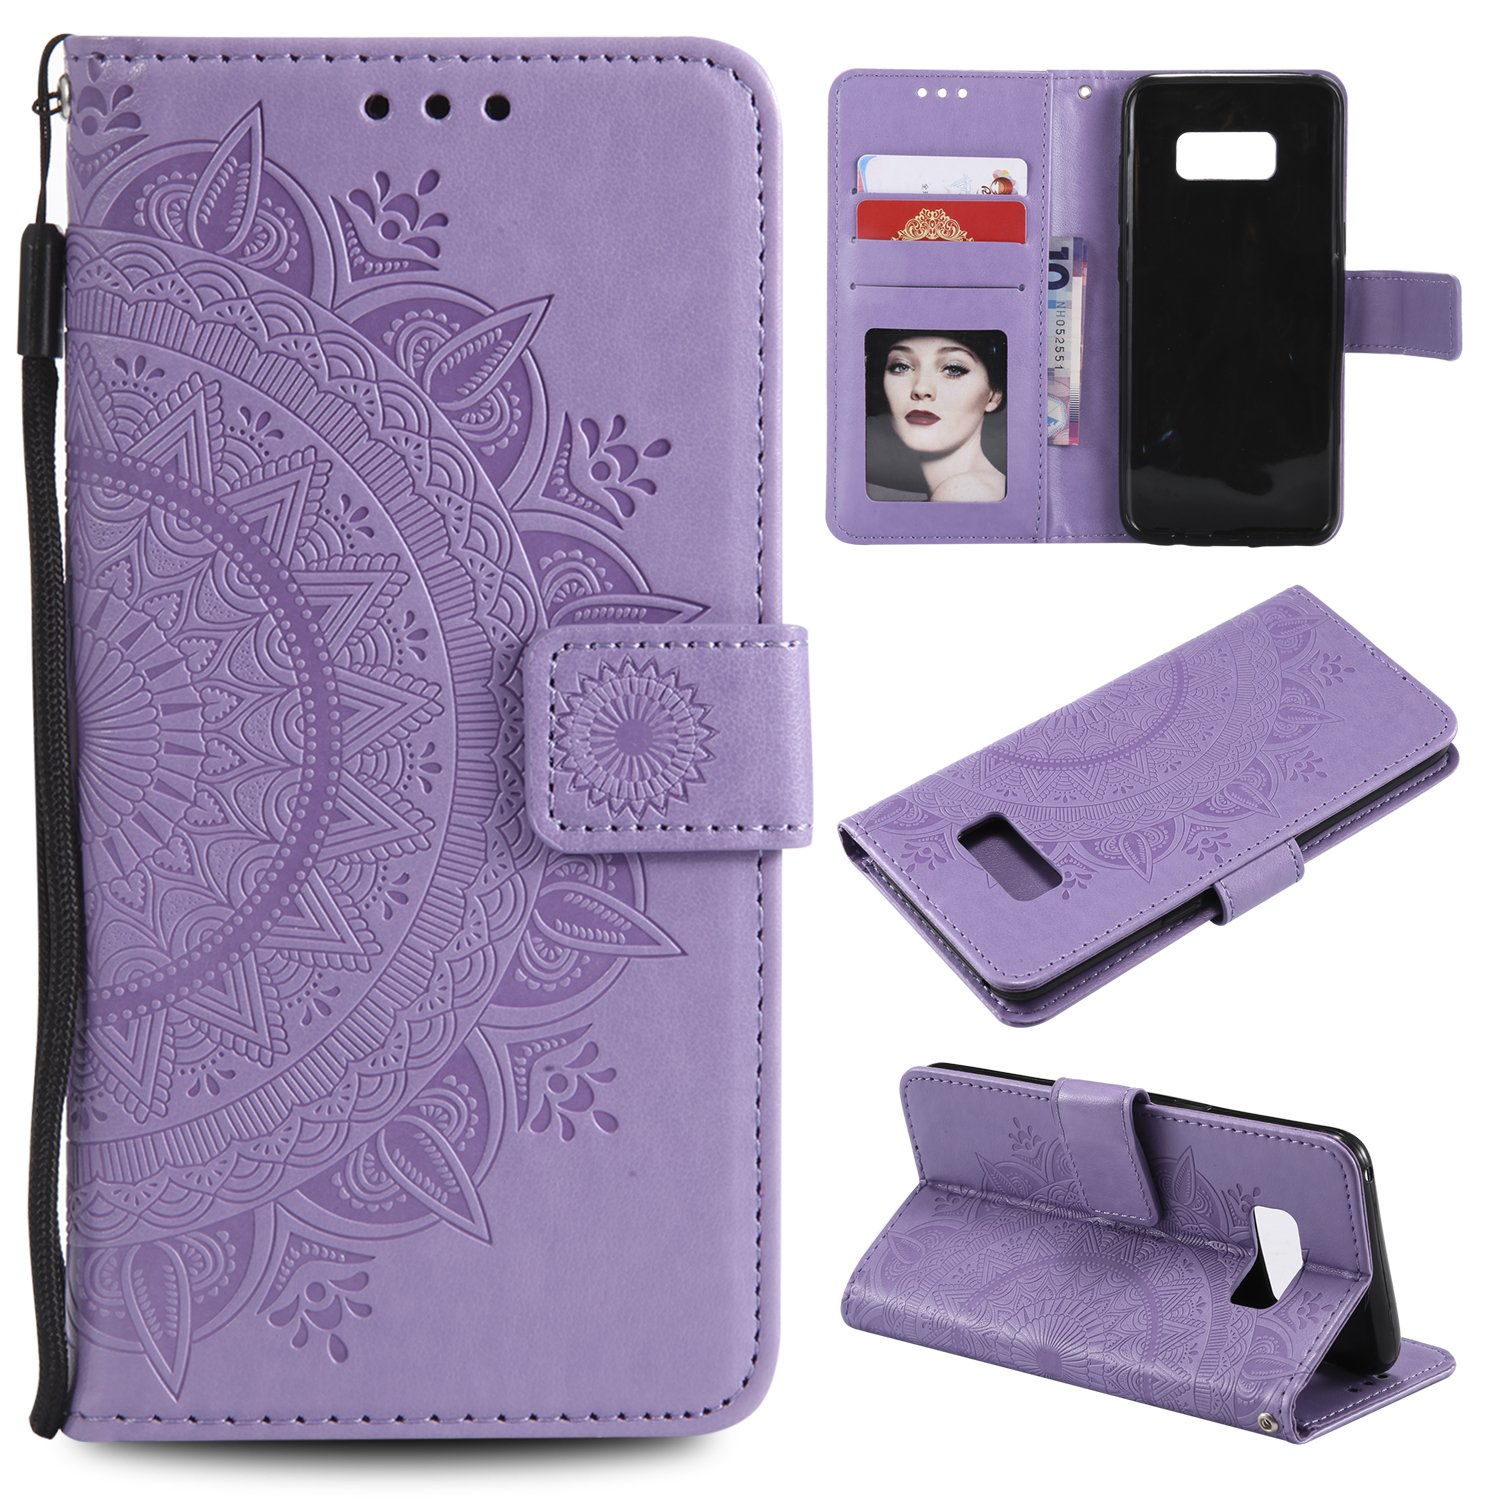 Galaxy S8 Plus (S8 +) Floral Wallet Case,Galaxy S8 Plus (S8 +) Strap Flip Case,Leecase Embossed Totem Flower Design Pu Leather Bookstyle Stand Flip Case for Samsung Galaxy S8 Plus (S8 +)-Purple